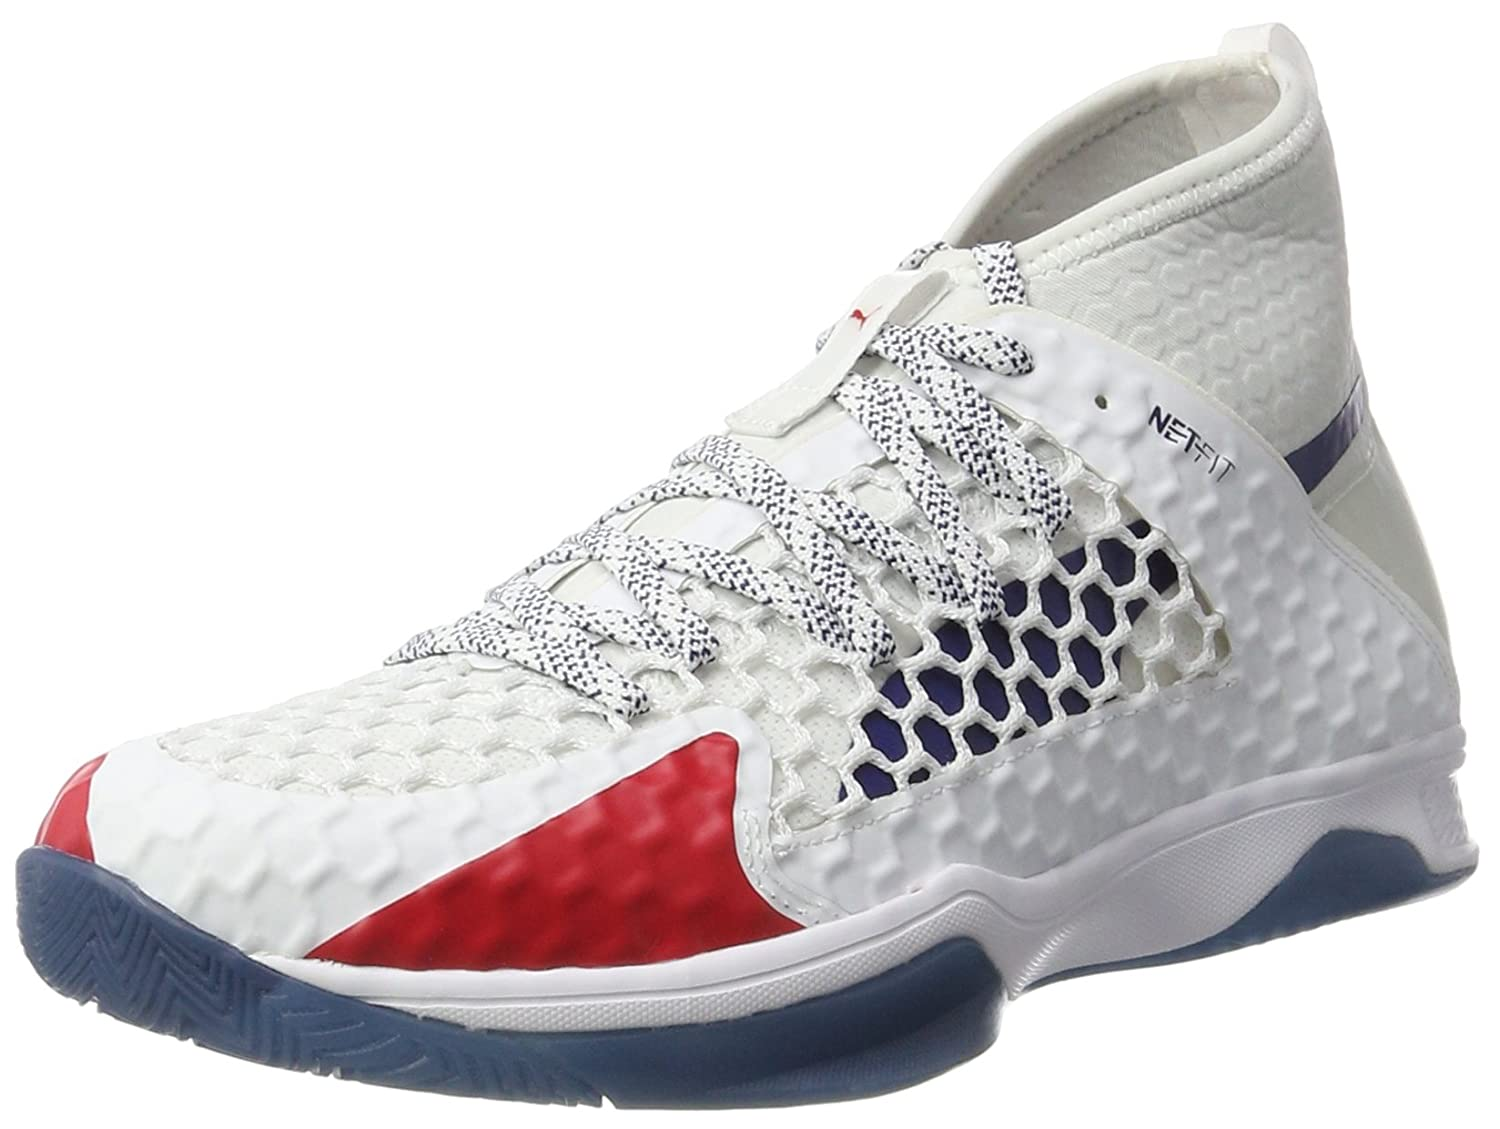 Puma Evospeed Indoor Netfit 1, Zapatillas Deportivas para Interior Unisex Adulto